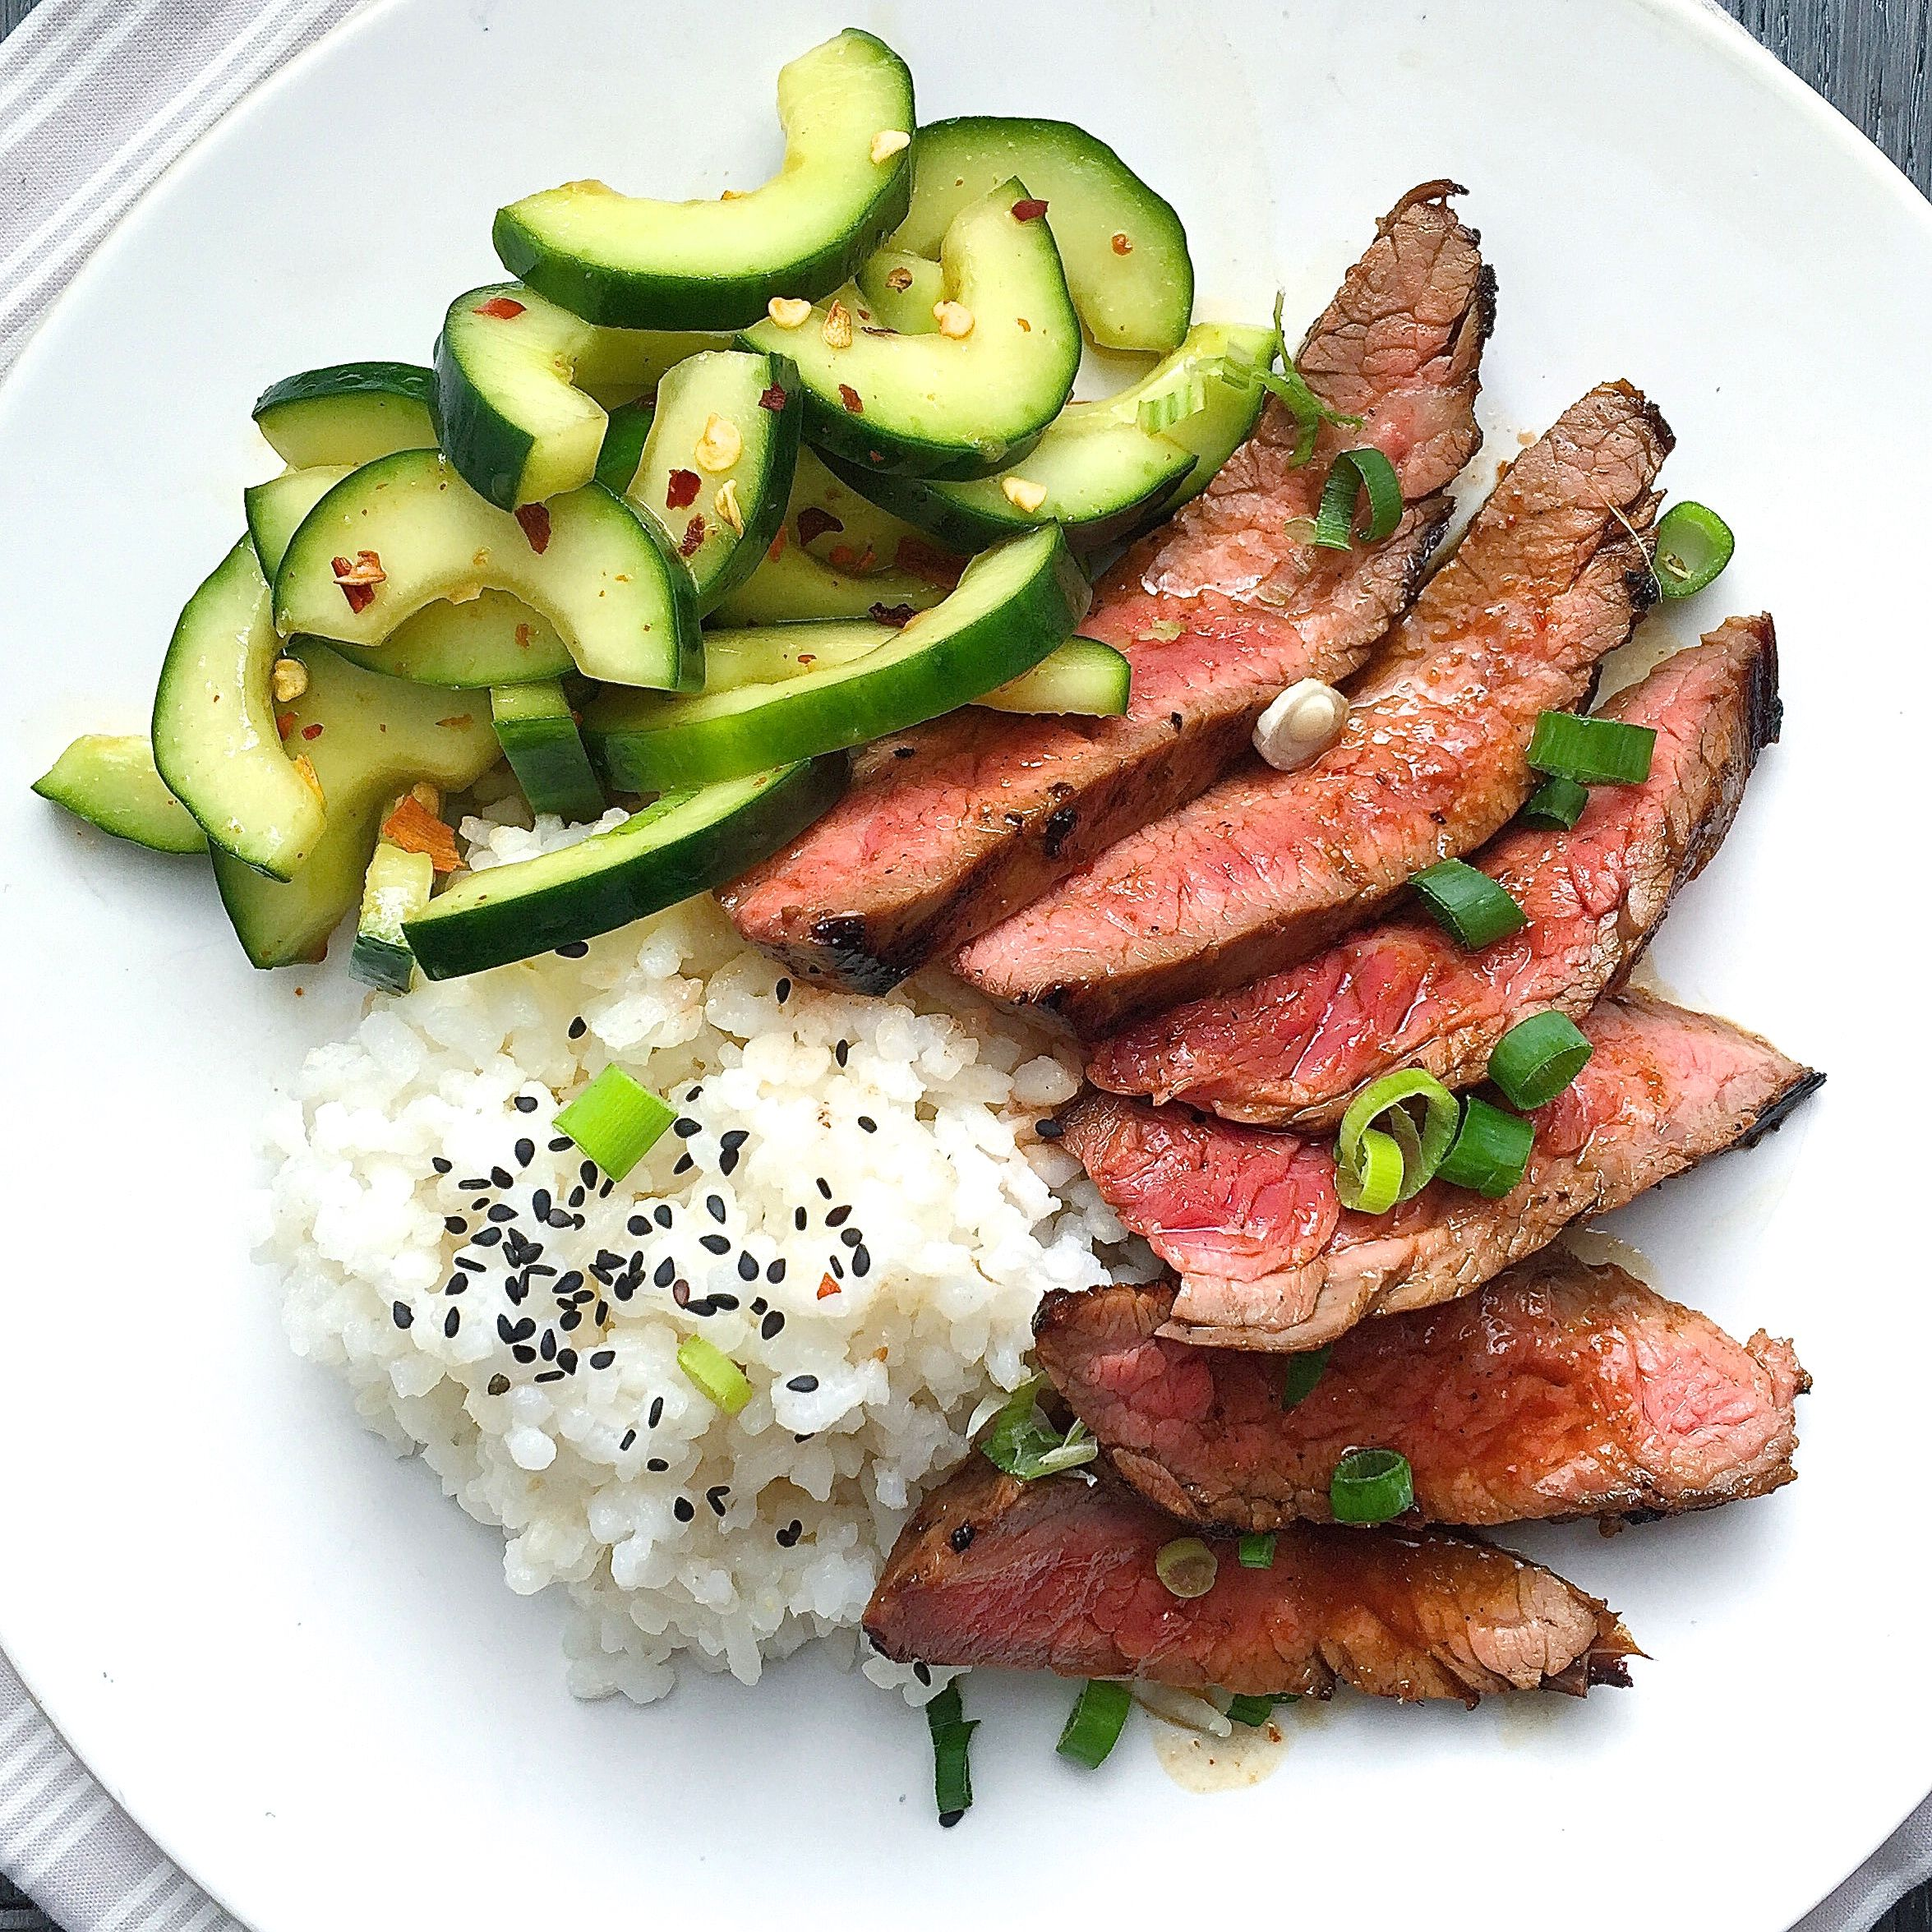 100 steak dinner recipes easy ideas for cooking steak delish forumfinder Choice Image